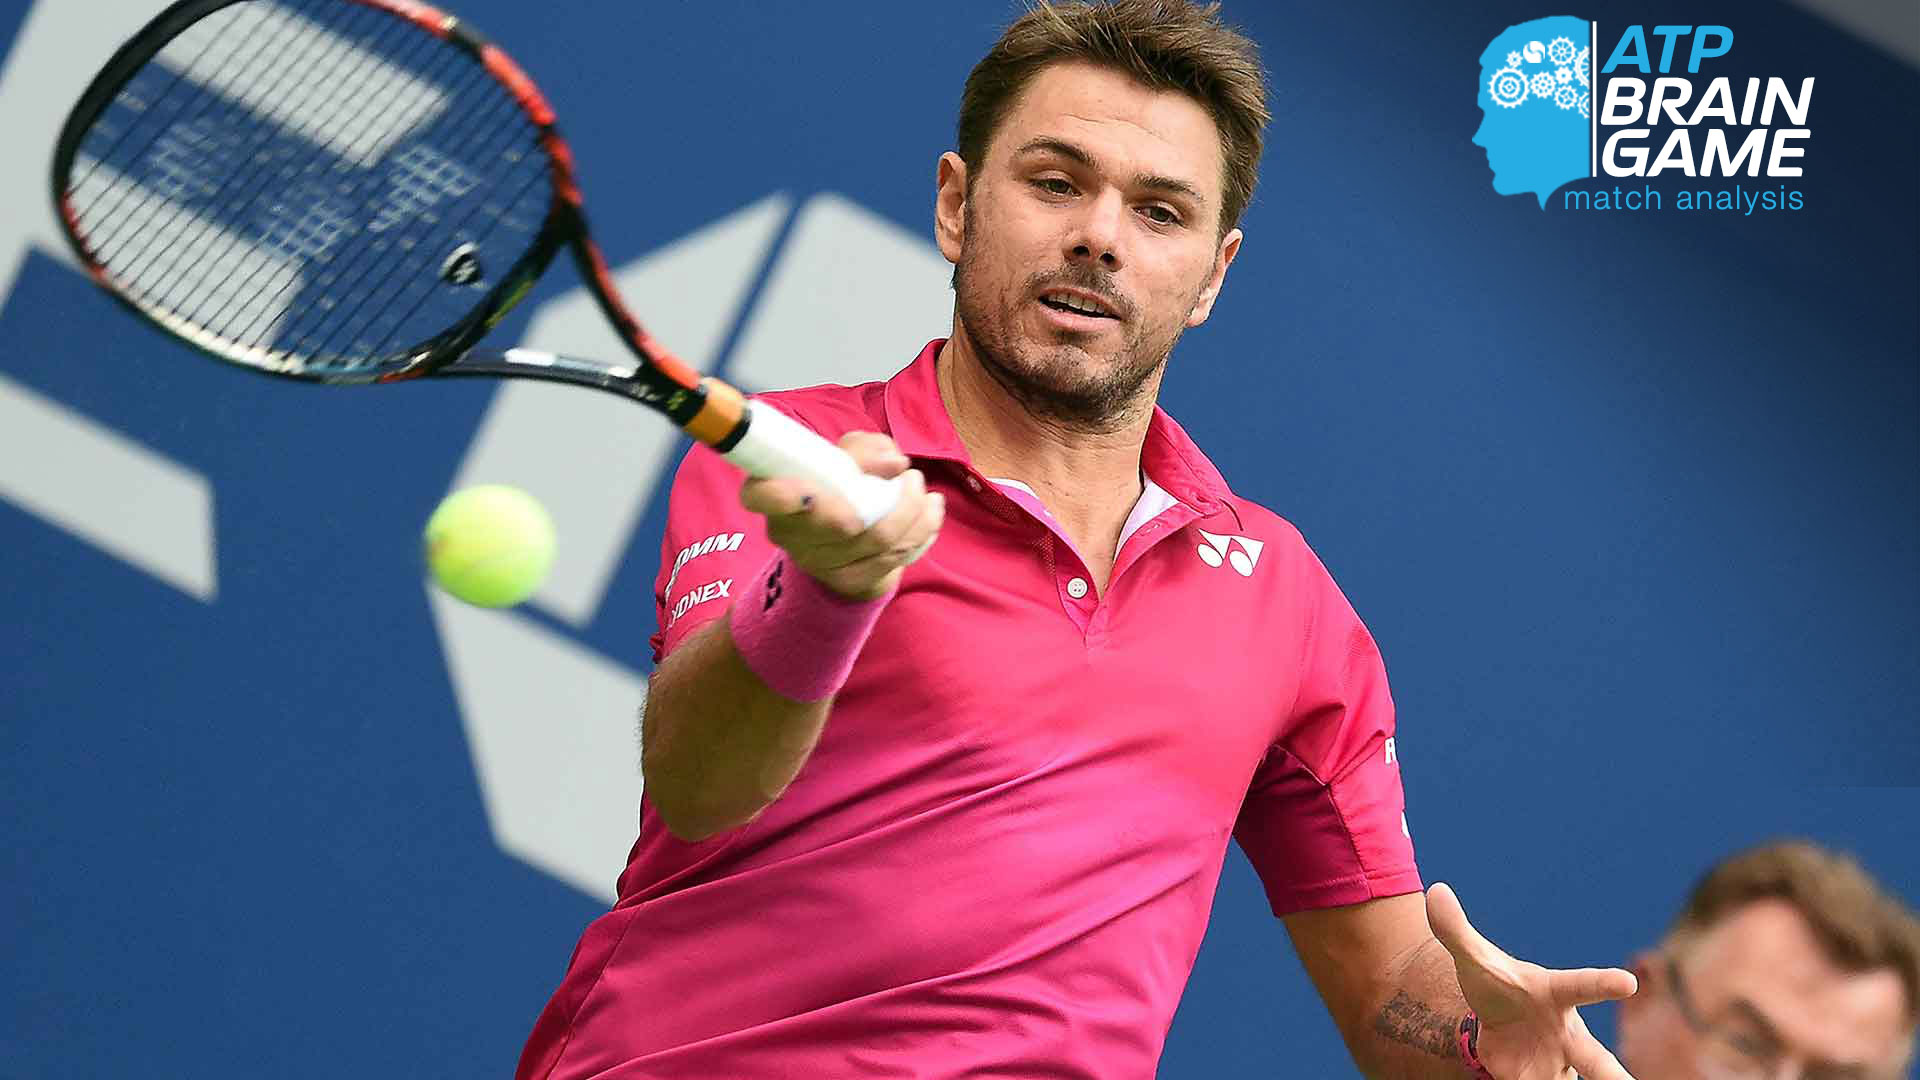 Stan Wawrinka rallies from a set down to win the US Open.